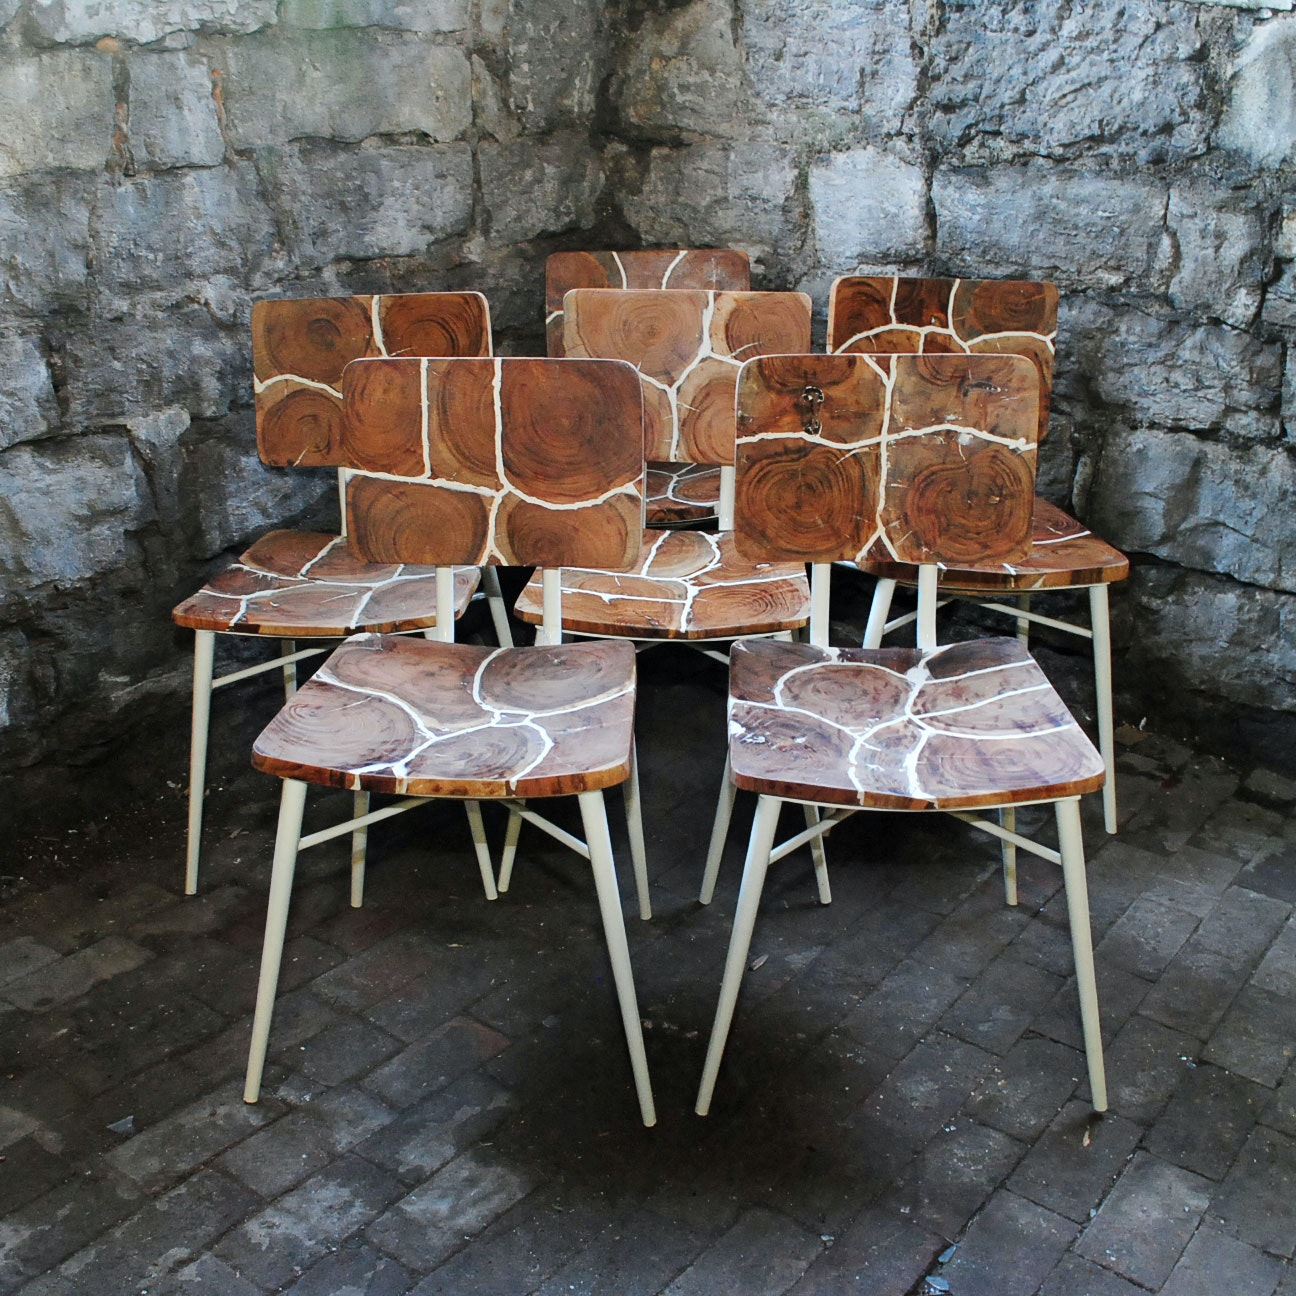 Dining Chairs with Cross-Cut Wood